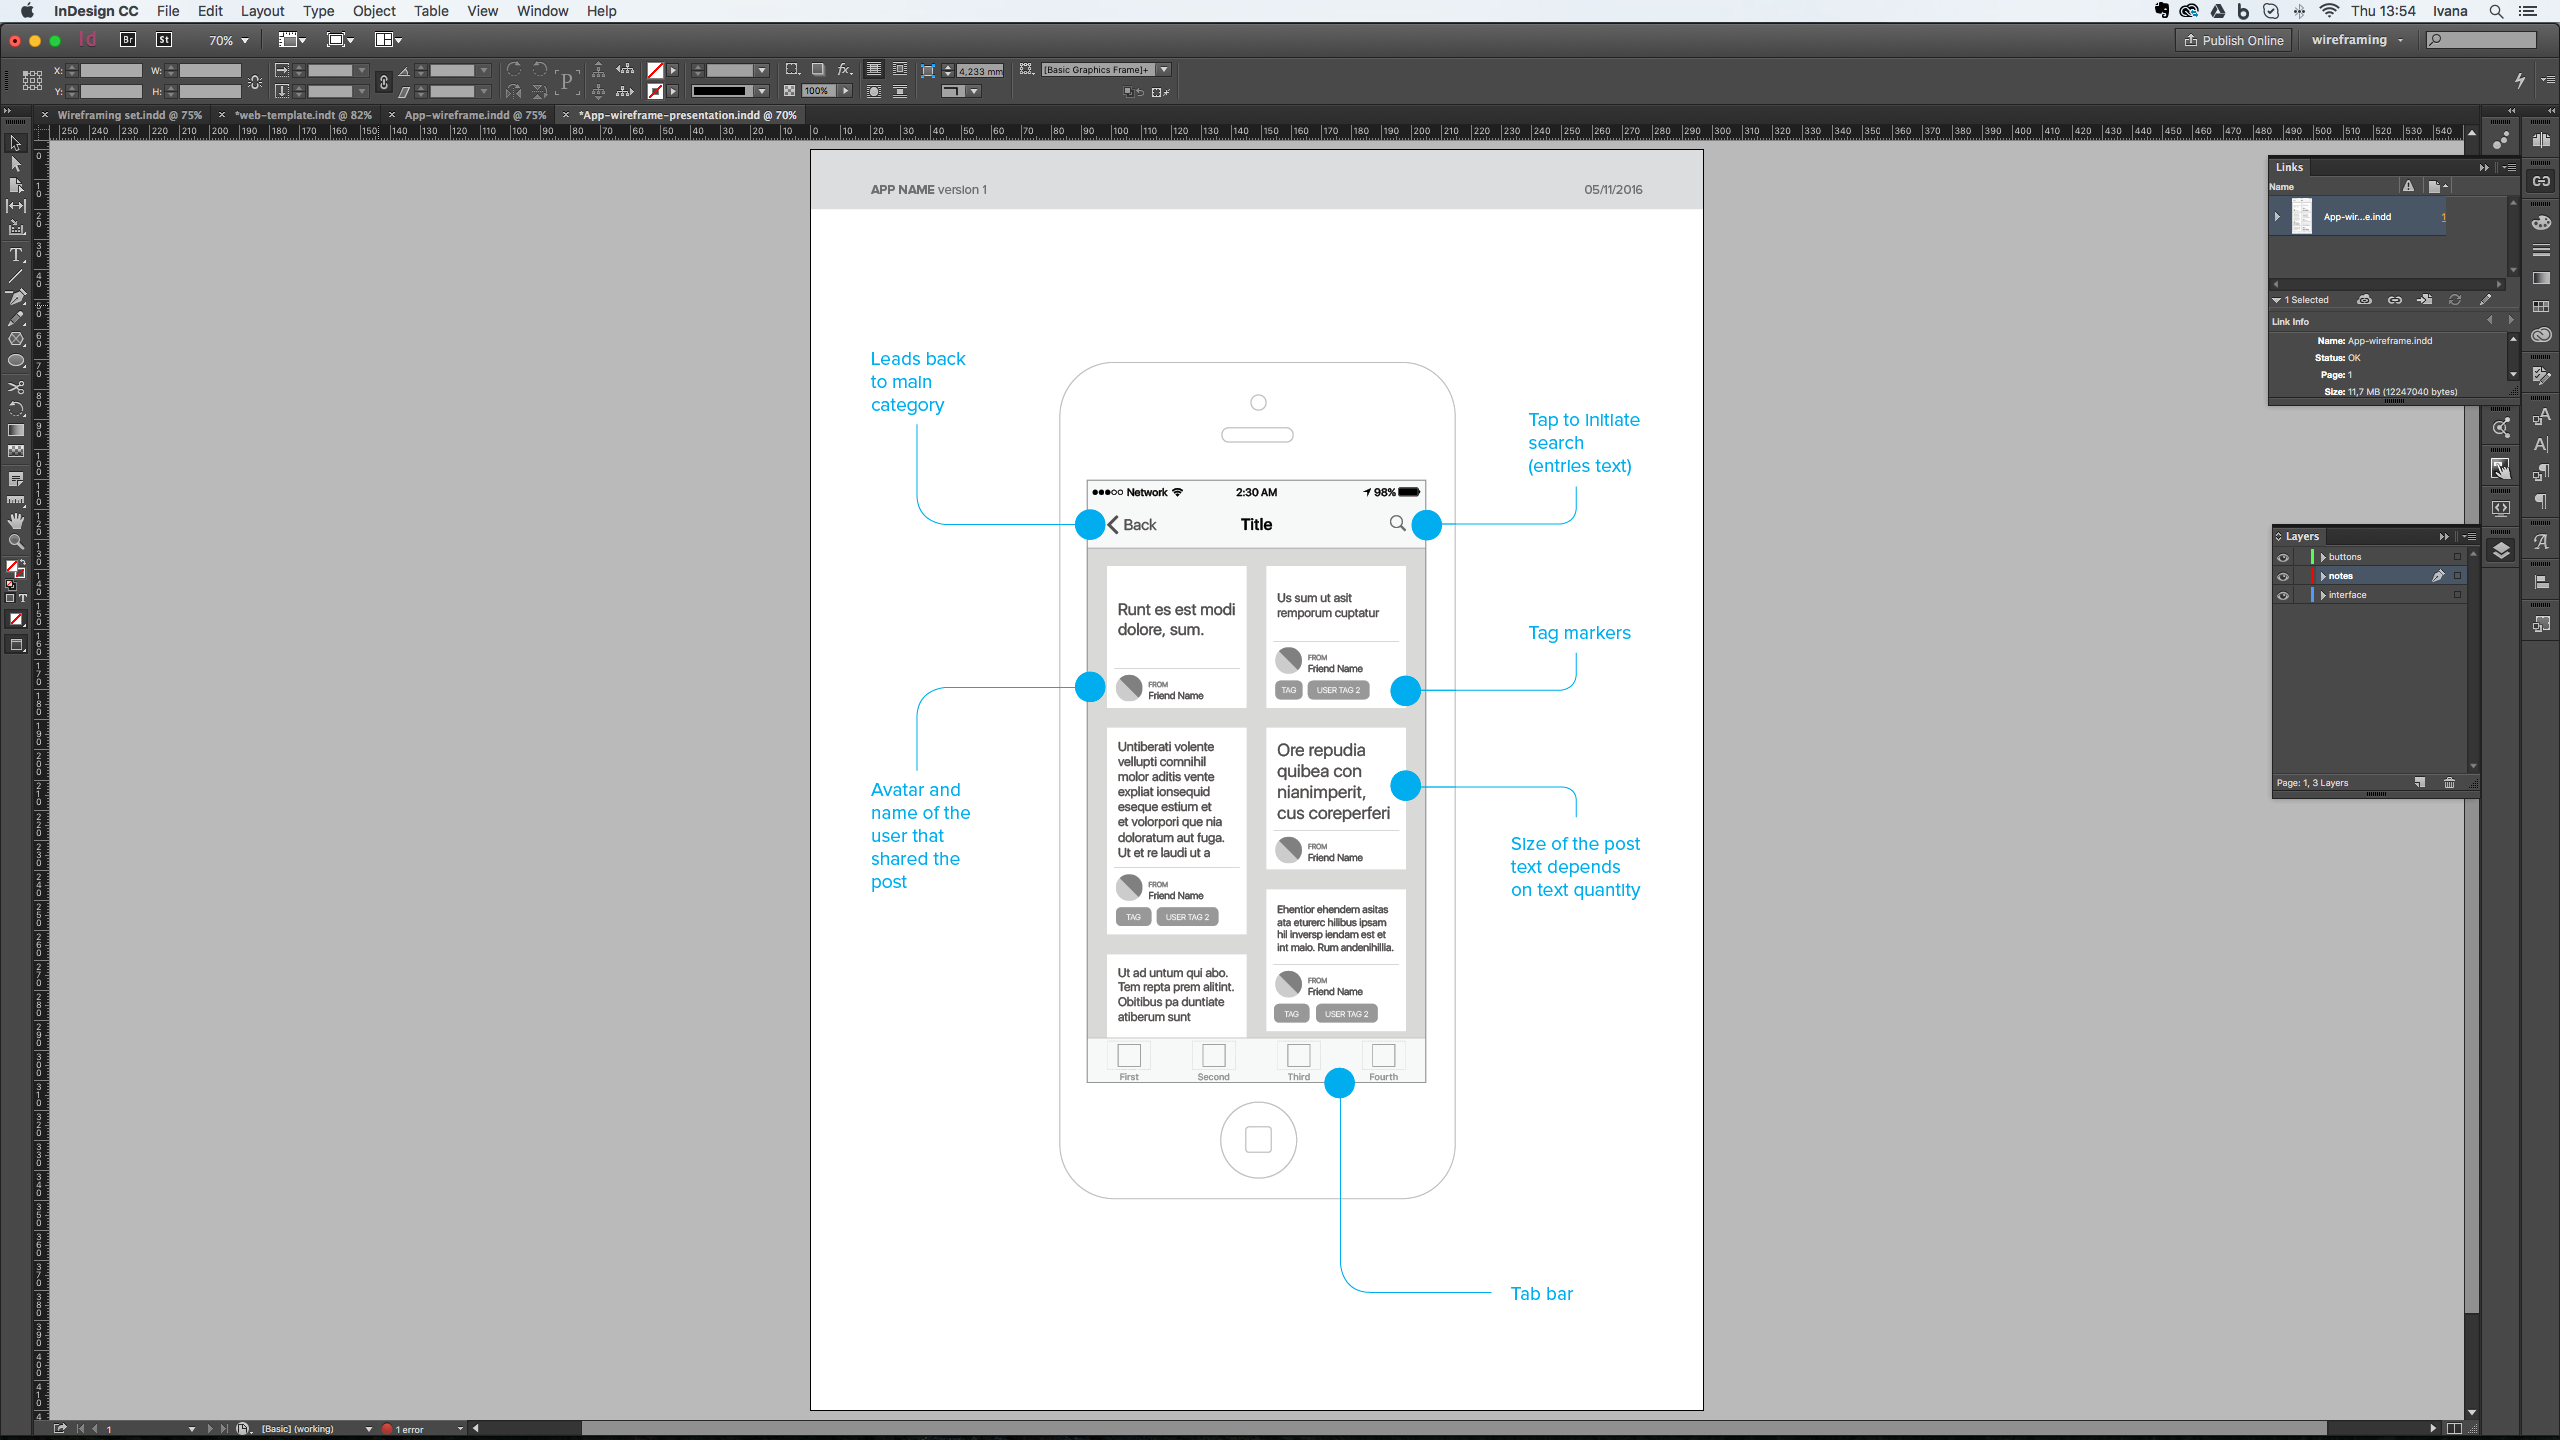 Who Knew Adobe CC Could Wireframe? - Image 10